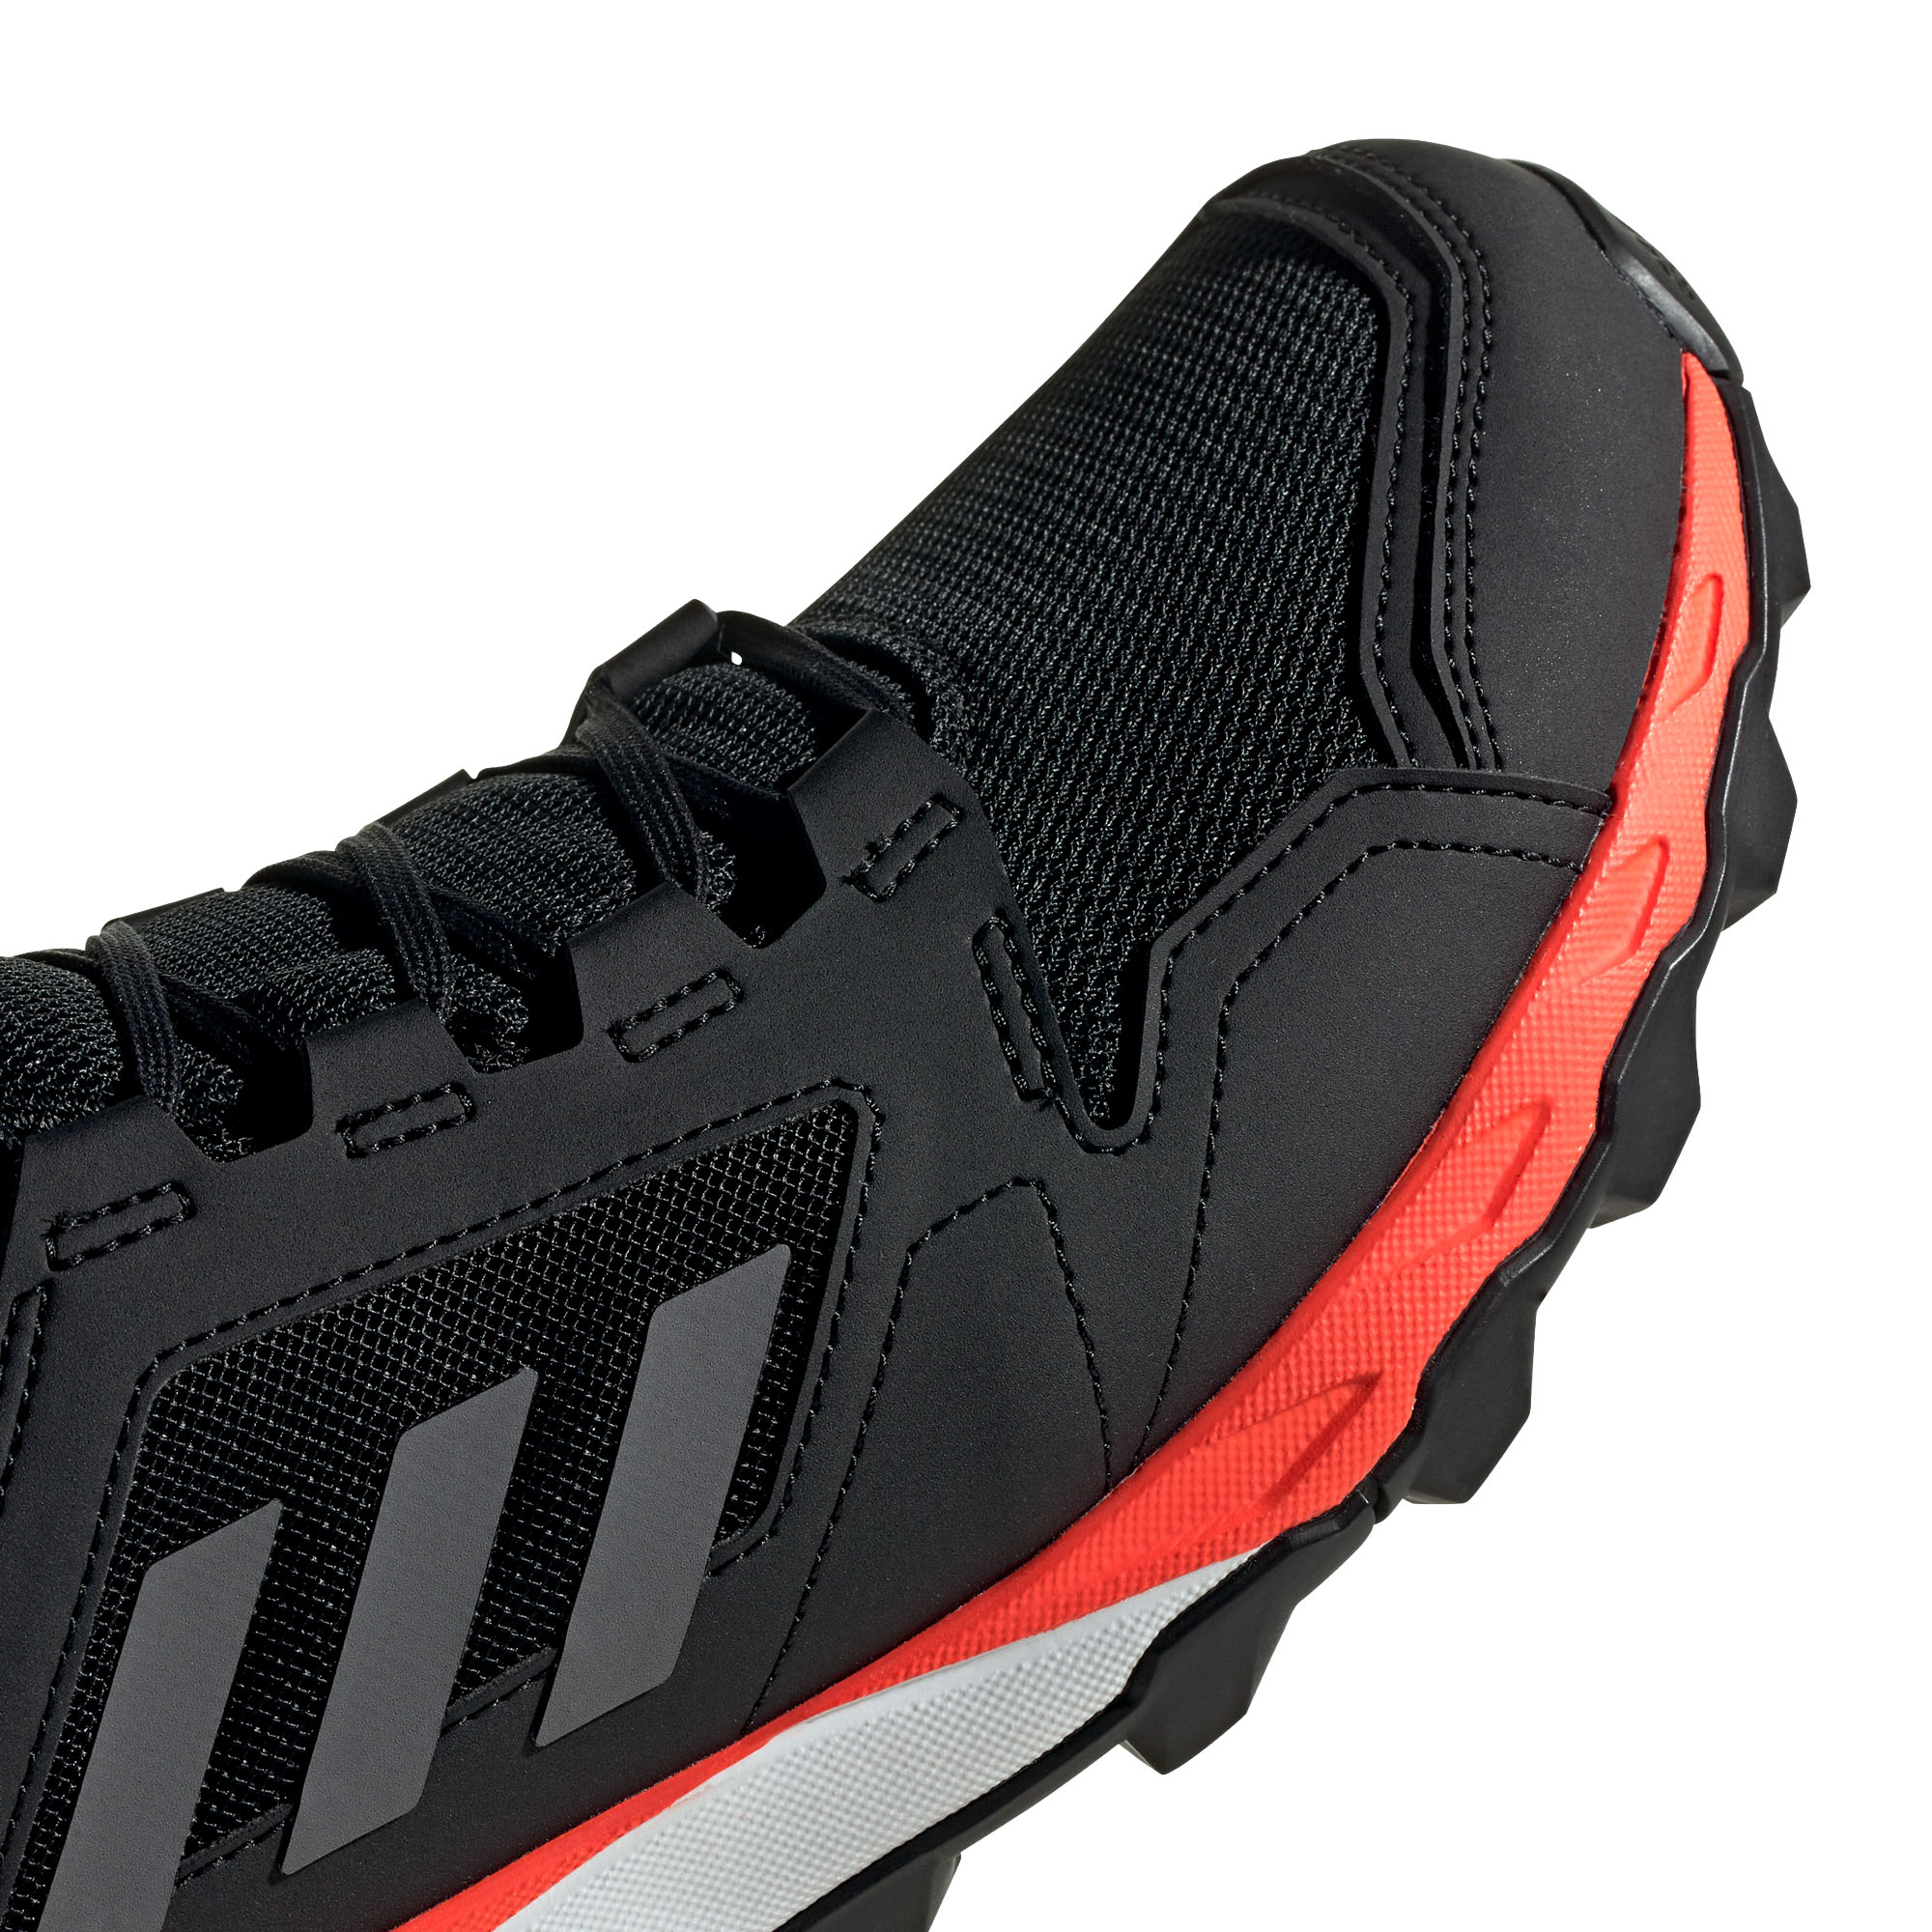 miniature 10 - Adidas-Terrex-en-apesanteur-GTX-Homme-Trail-Running-Trainer-Shoe-Black-Red